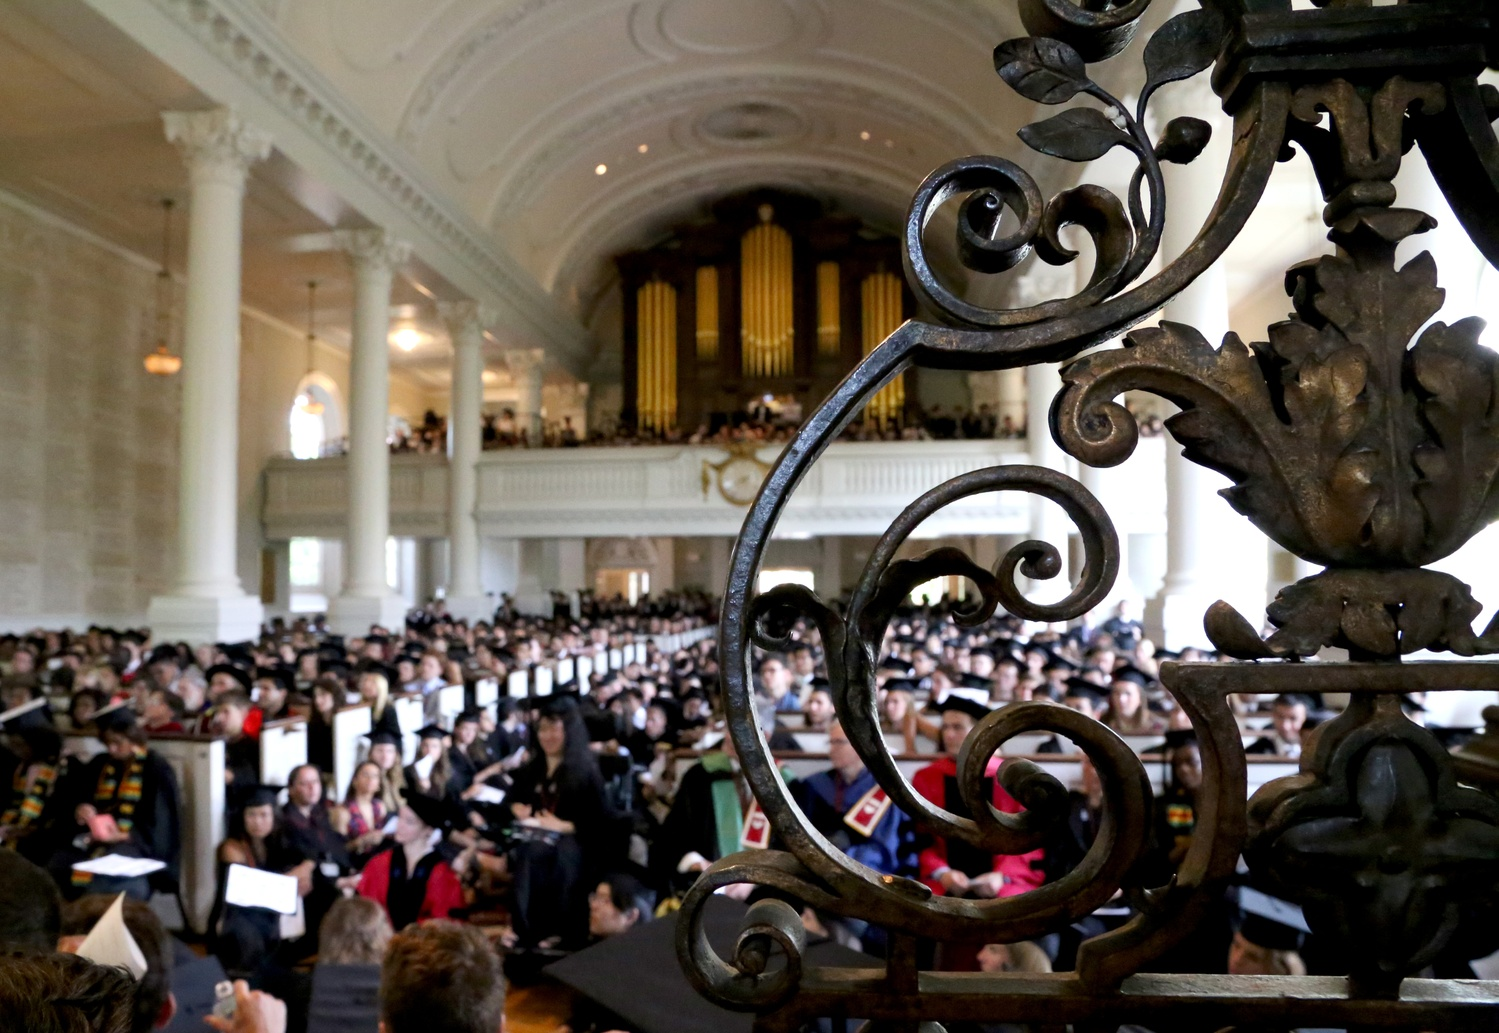 Memorial Church, pictured during Commencement of last year. The Church will soon undergo renovations.